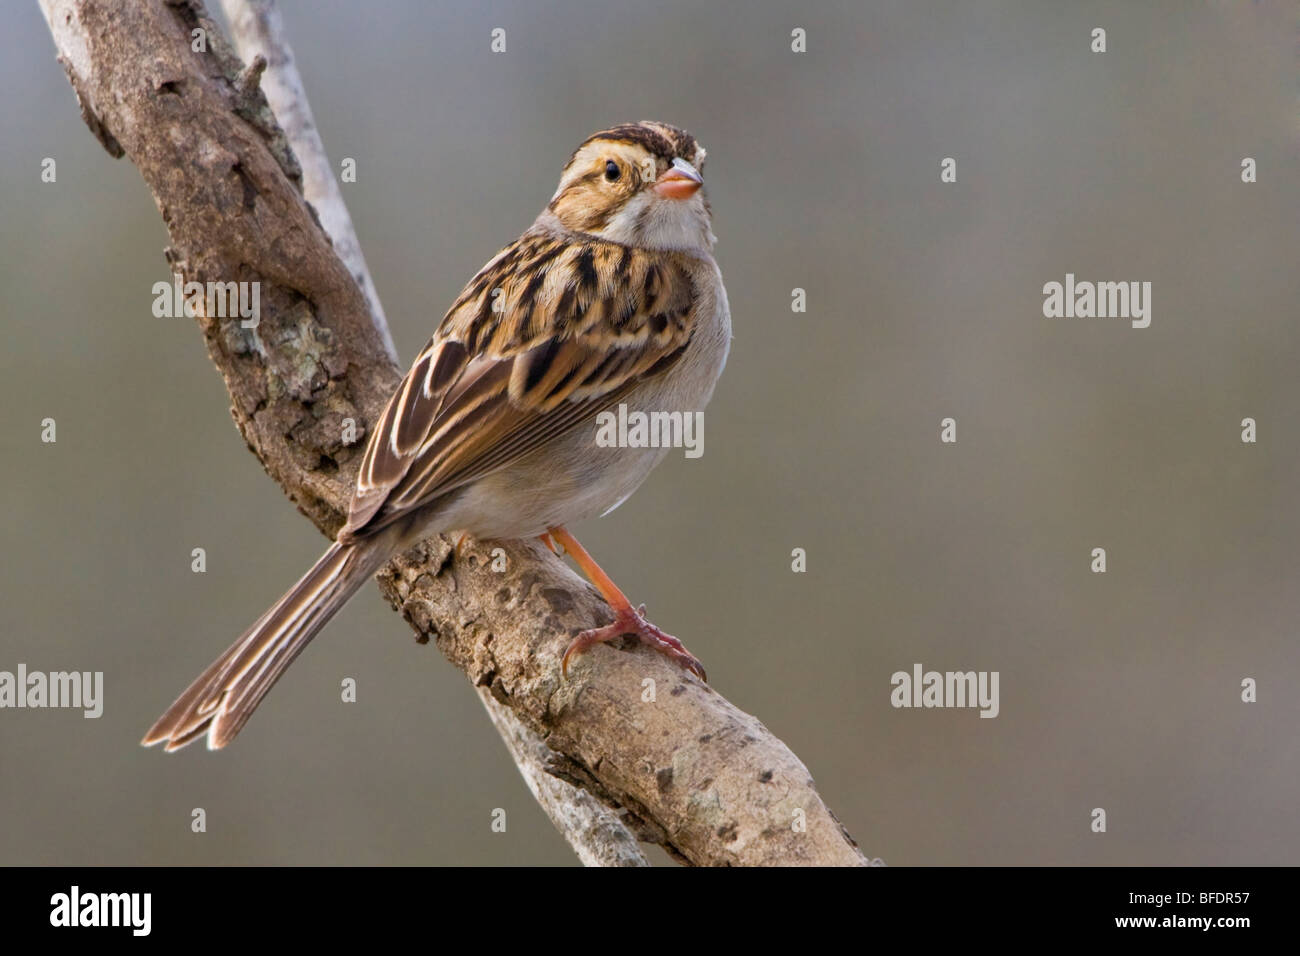 Clay-colored sparrow (Spizella pallida) perched on a branch at Falcon State Park, Texas, USA - Stock Image